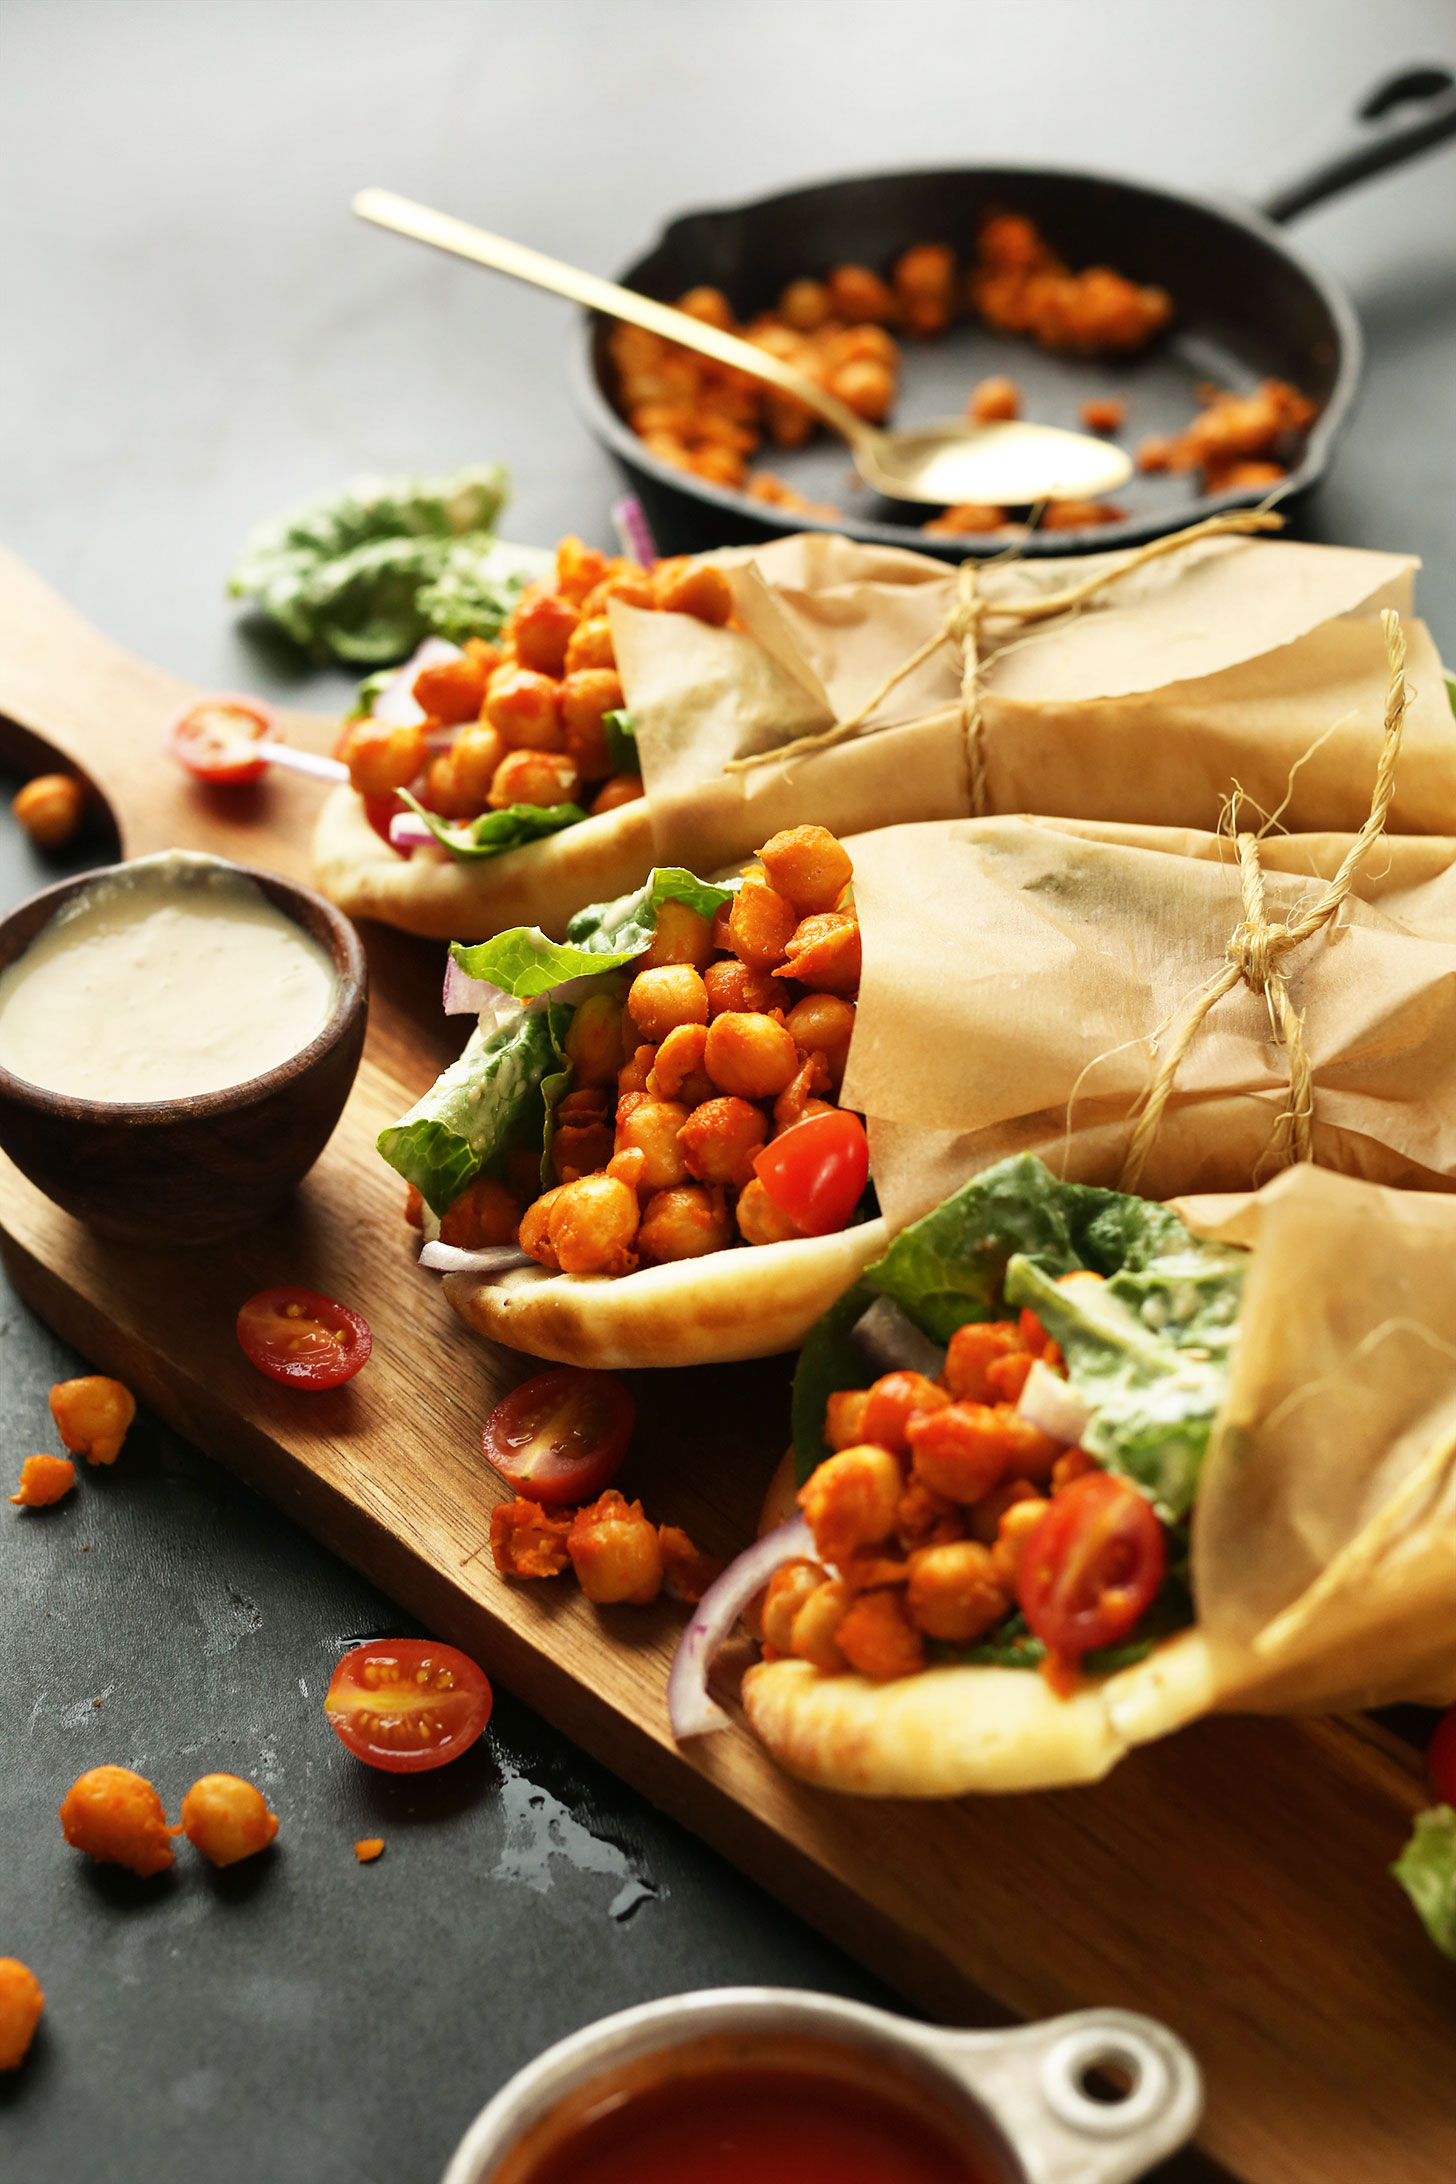 Rolled vegan Buffalo Chickpea Wraps with a side of creamy hummus dressing